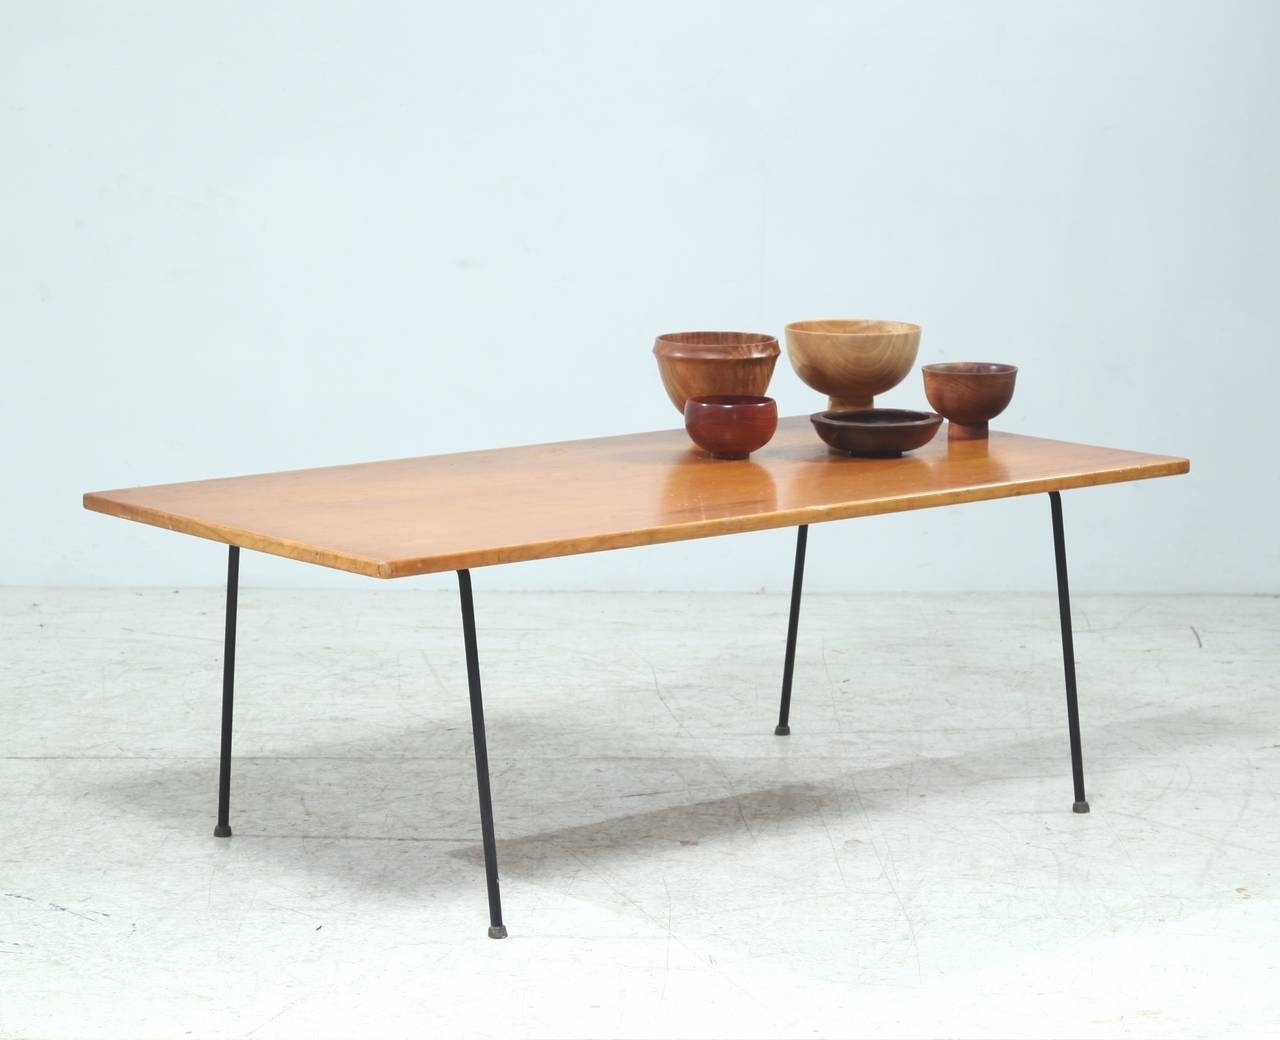 Minimalist Arden Riddle Coffee Table For Sale At 1Stdibs pertaining to Minimalist Coffee Tables (Image 13 of 30)